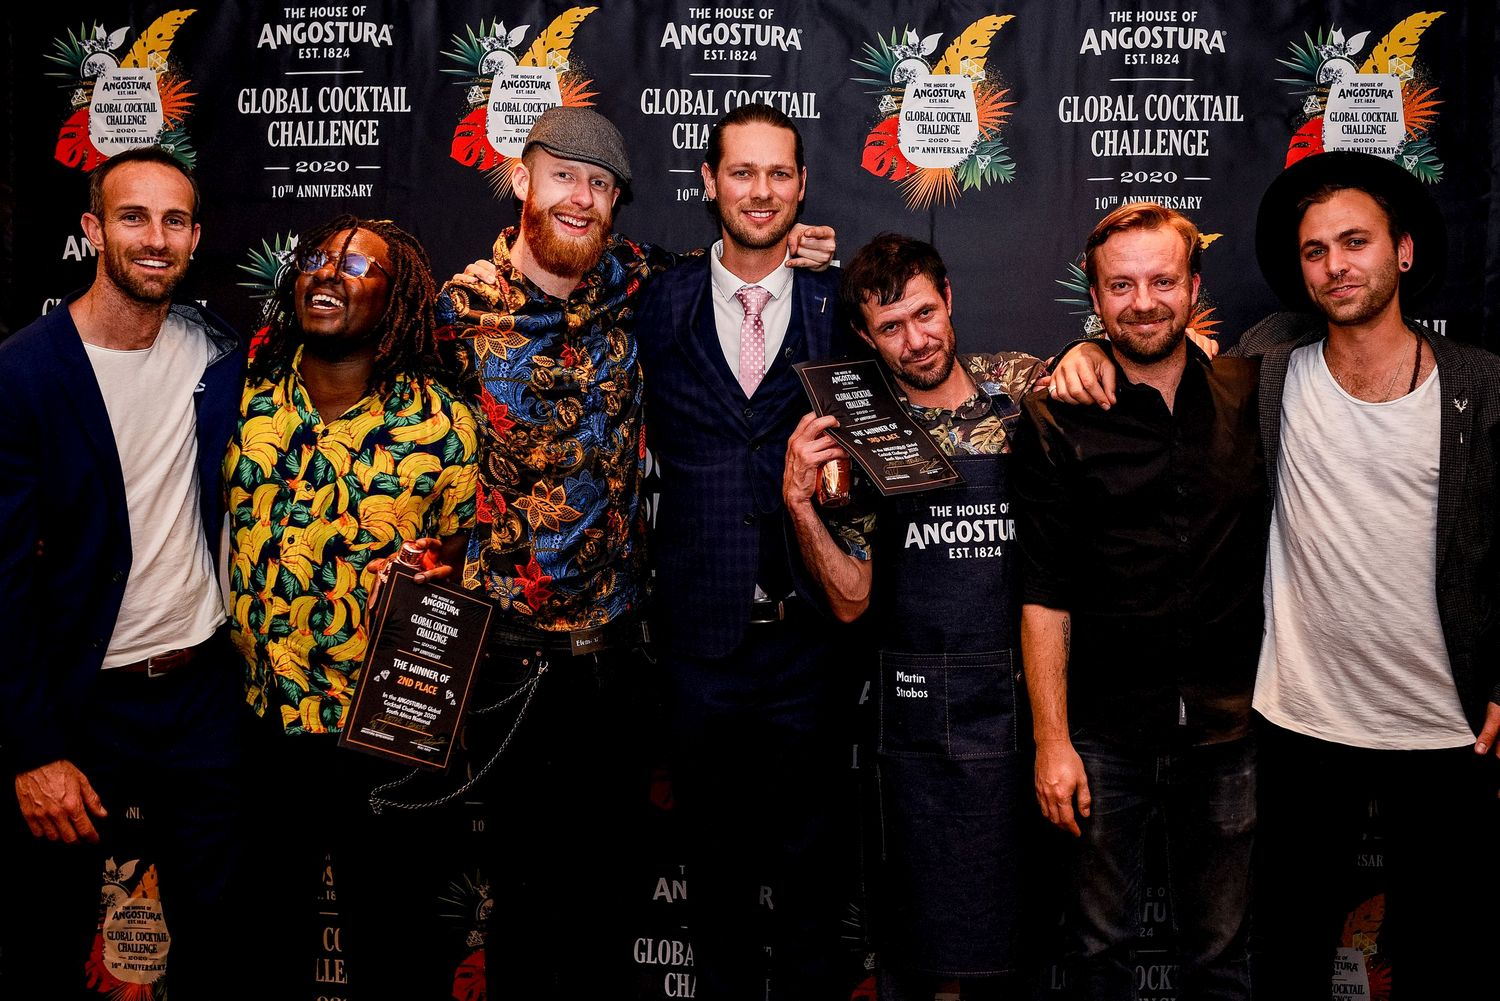 AGCC 2020 SA National Judges and Top Three Leighton Rathbone is South Africa's National Angostura® Global Cocktail Challenge Winner